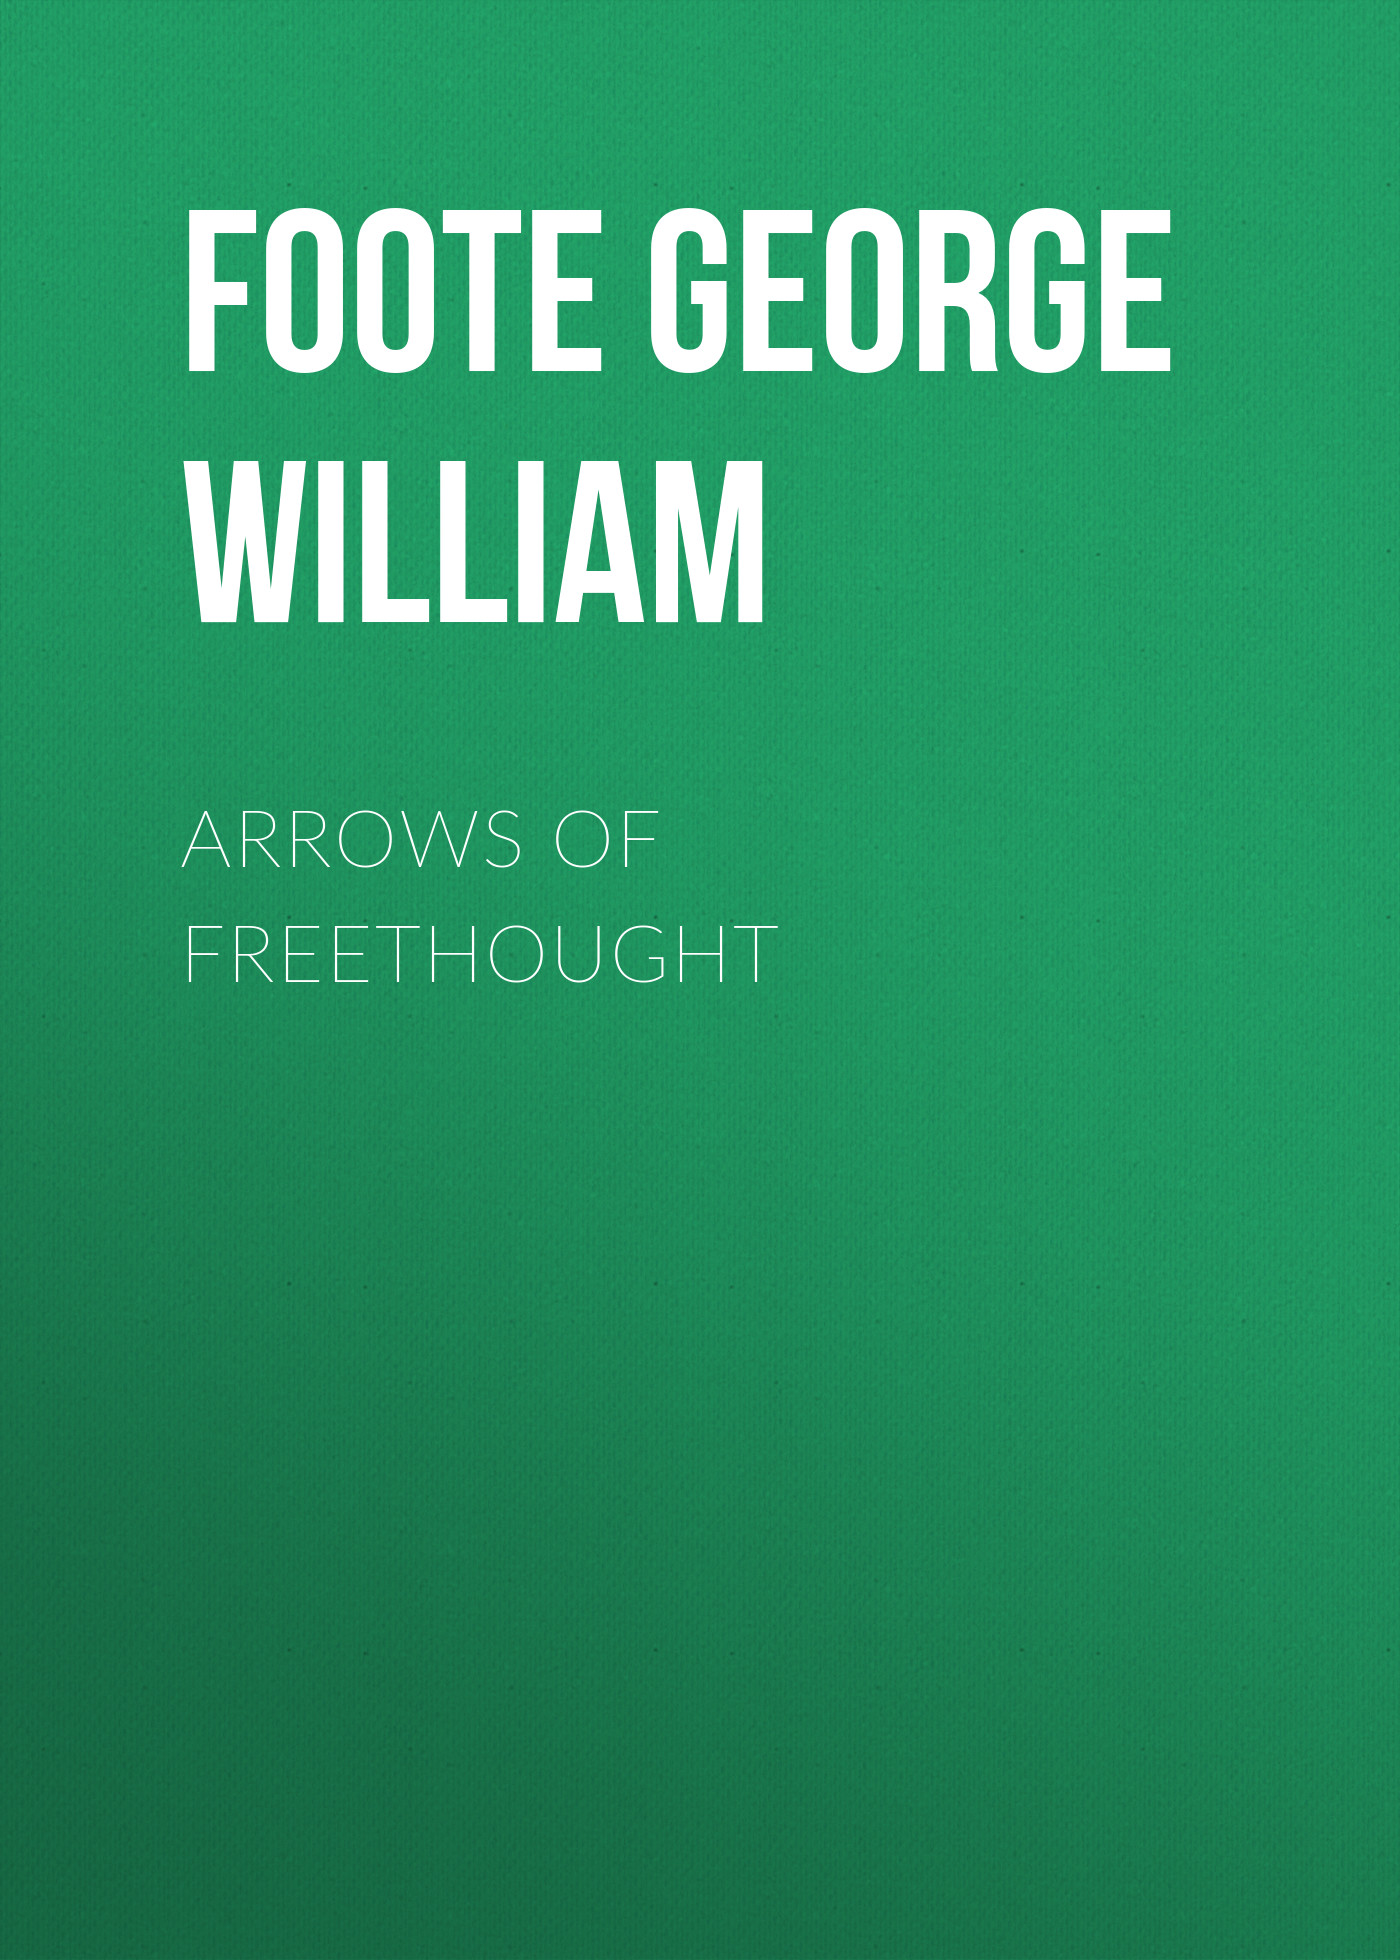 Foote George William Arrows of Freethought a quiver full of arrows